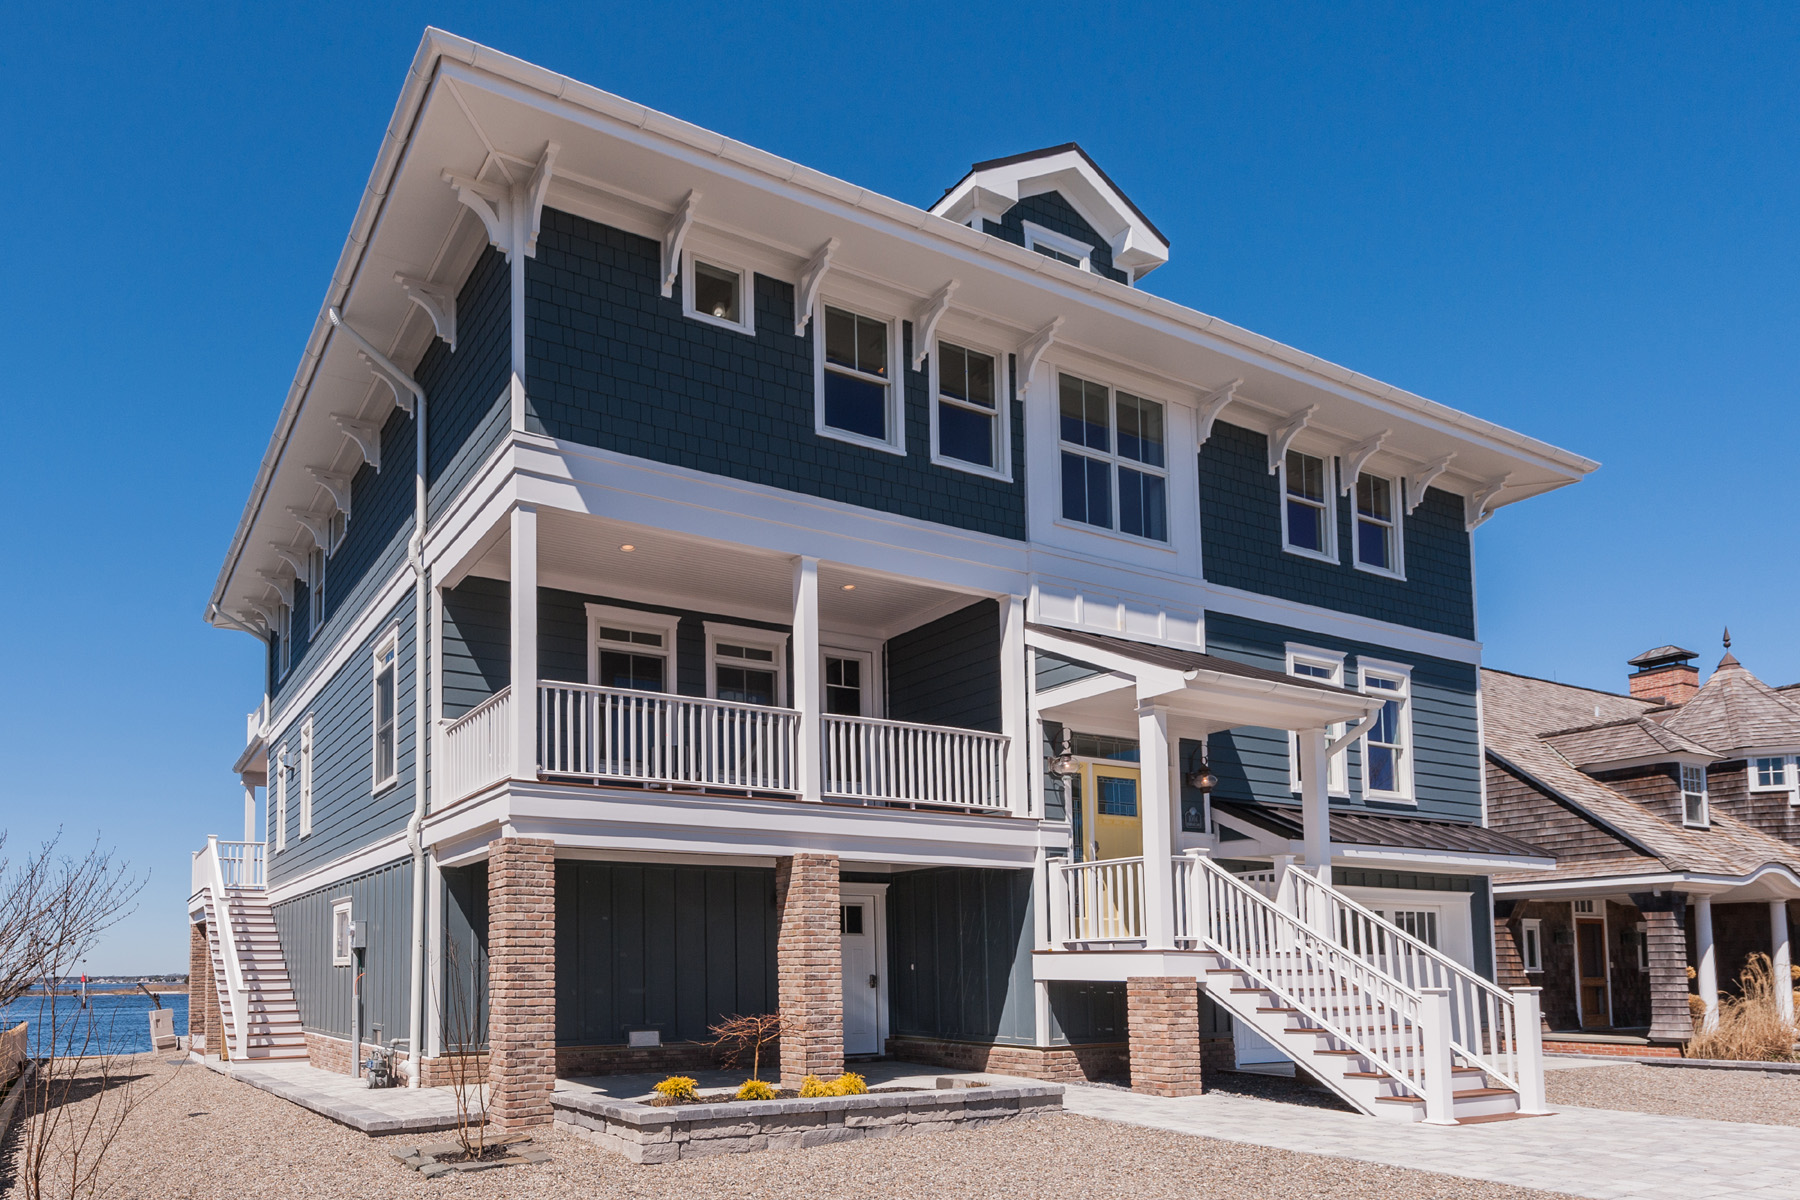 独户住宅 为 销售 在 New Coastal Craftsman Design On Barnegat Bay 1004 Barnegat Lane 洛金, 新泽西州, 08738 美国